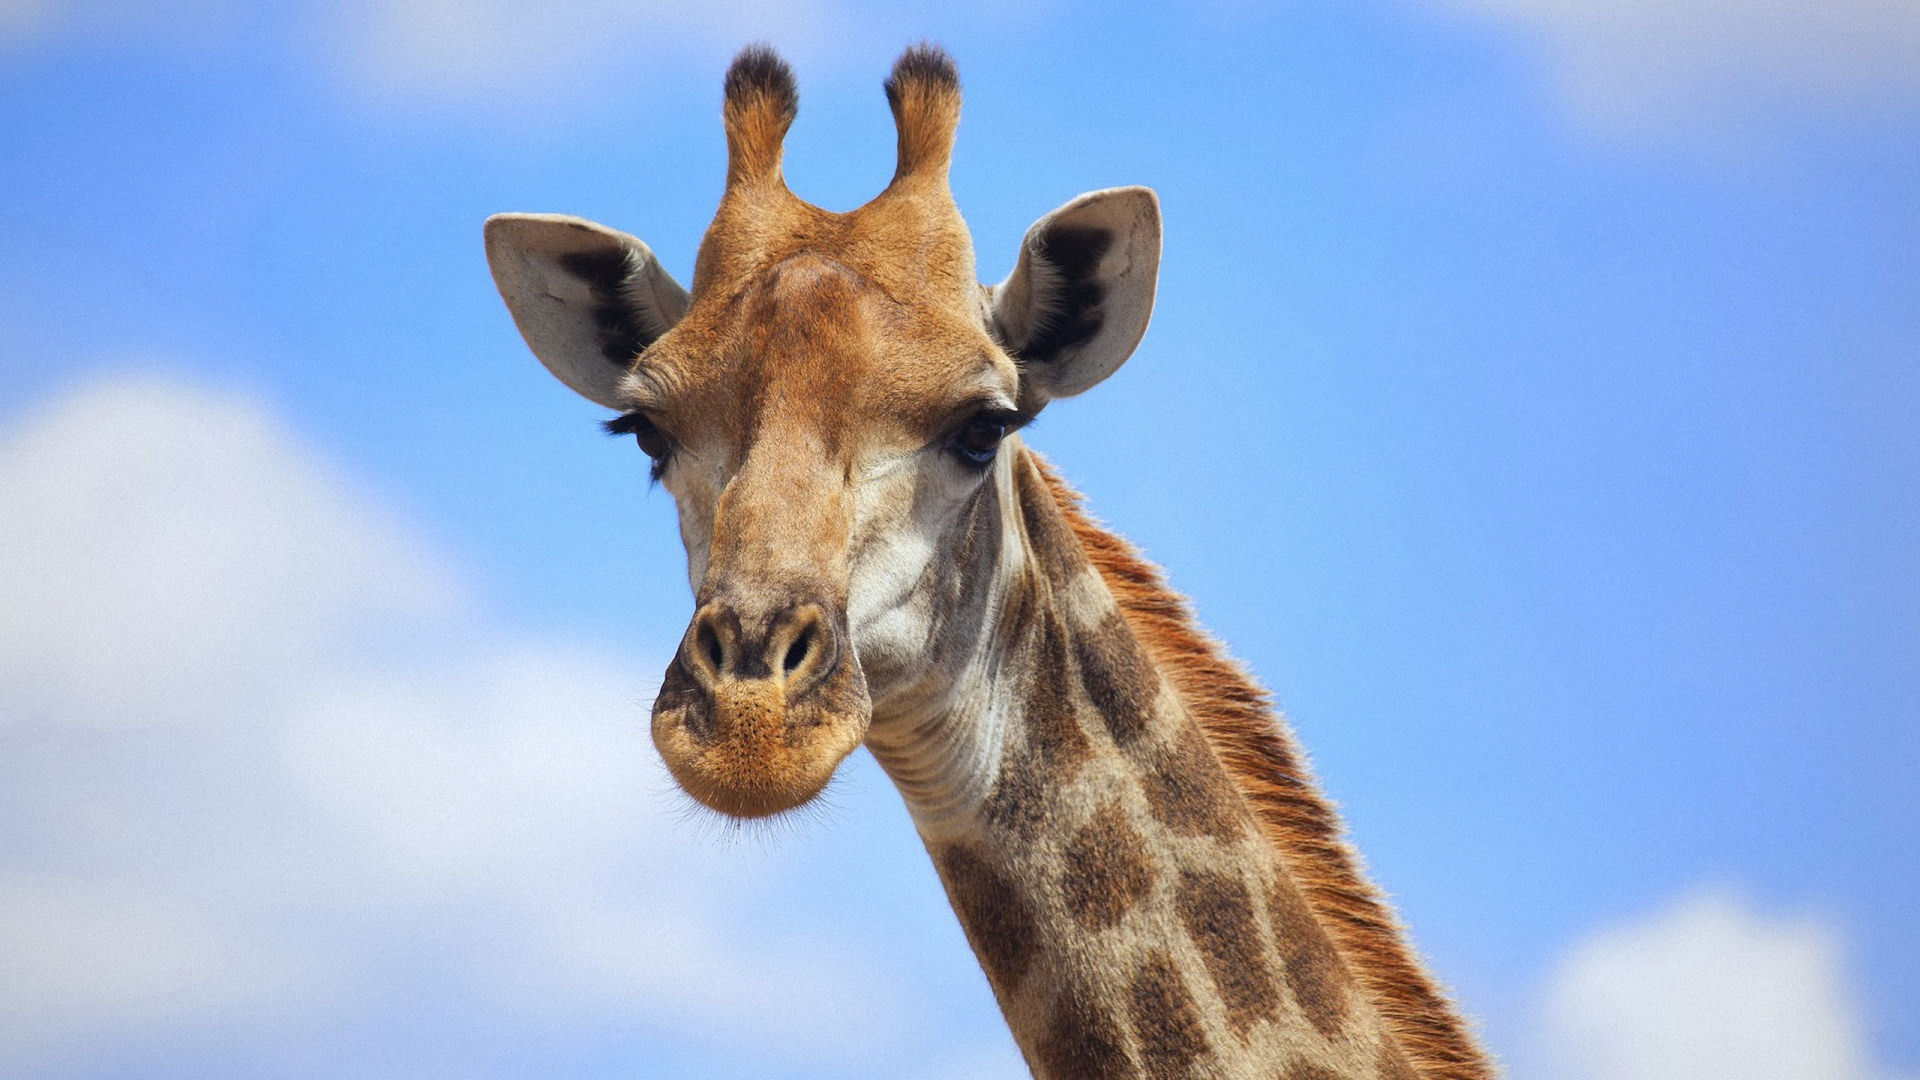 giraff wallpaper